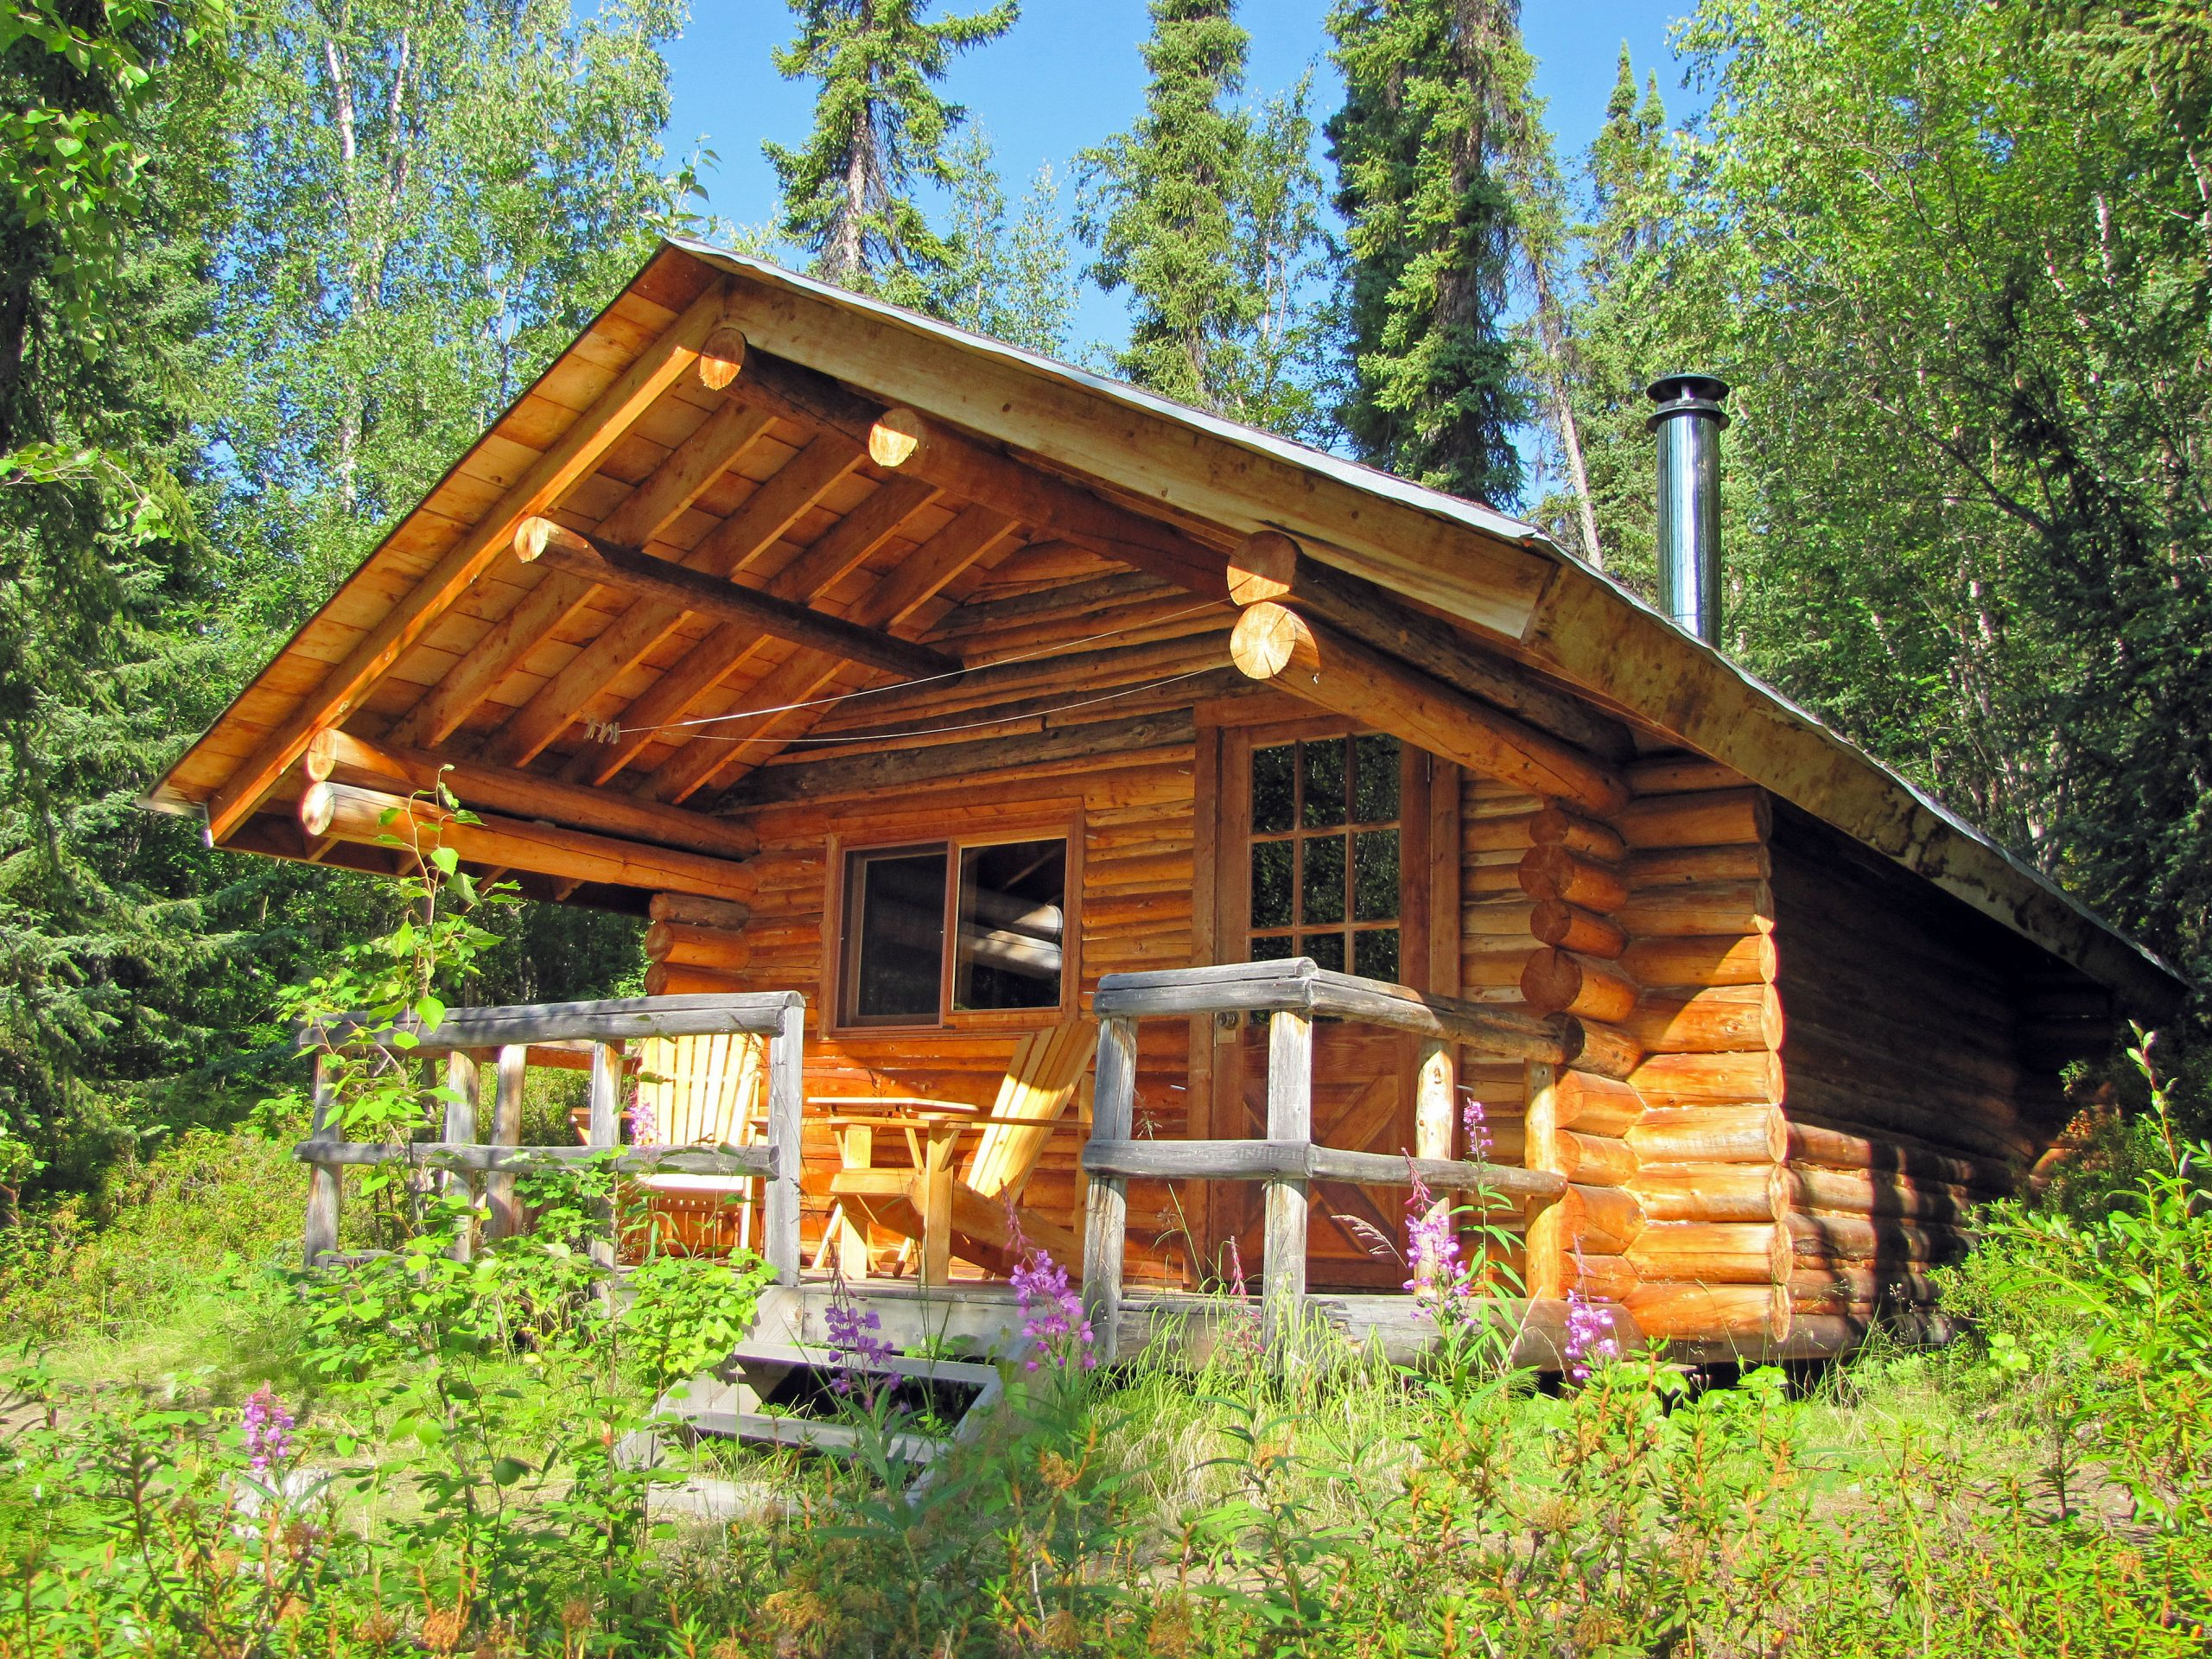 erdrot-travel, Yukon, Frances Lake Wilderness Lodge - Cabin